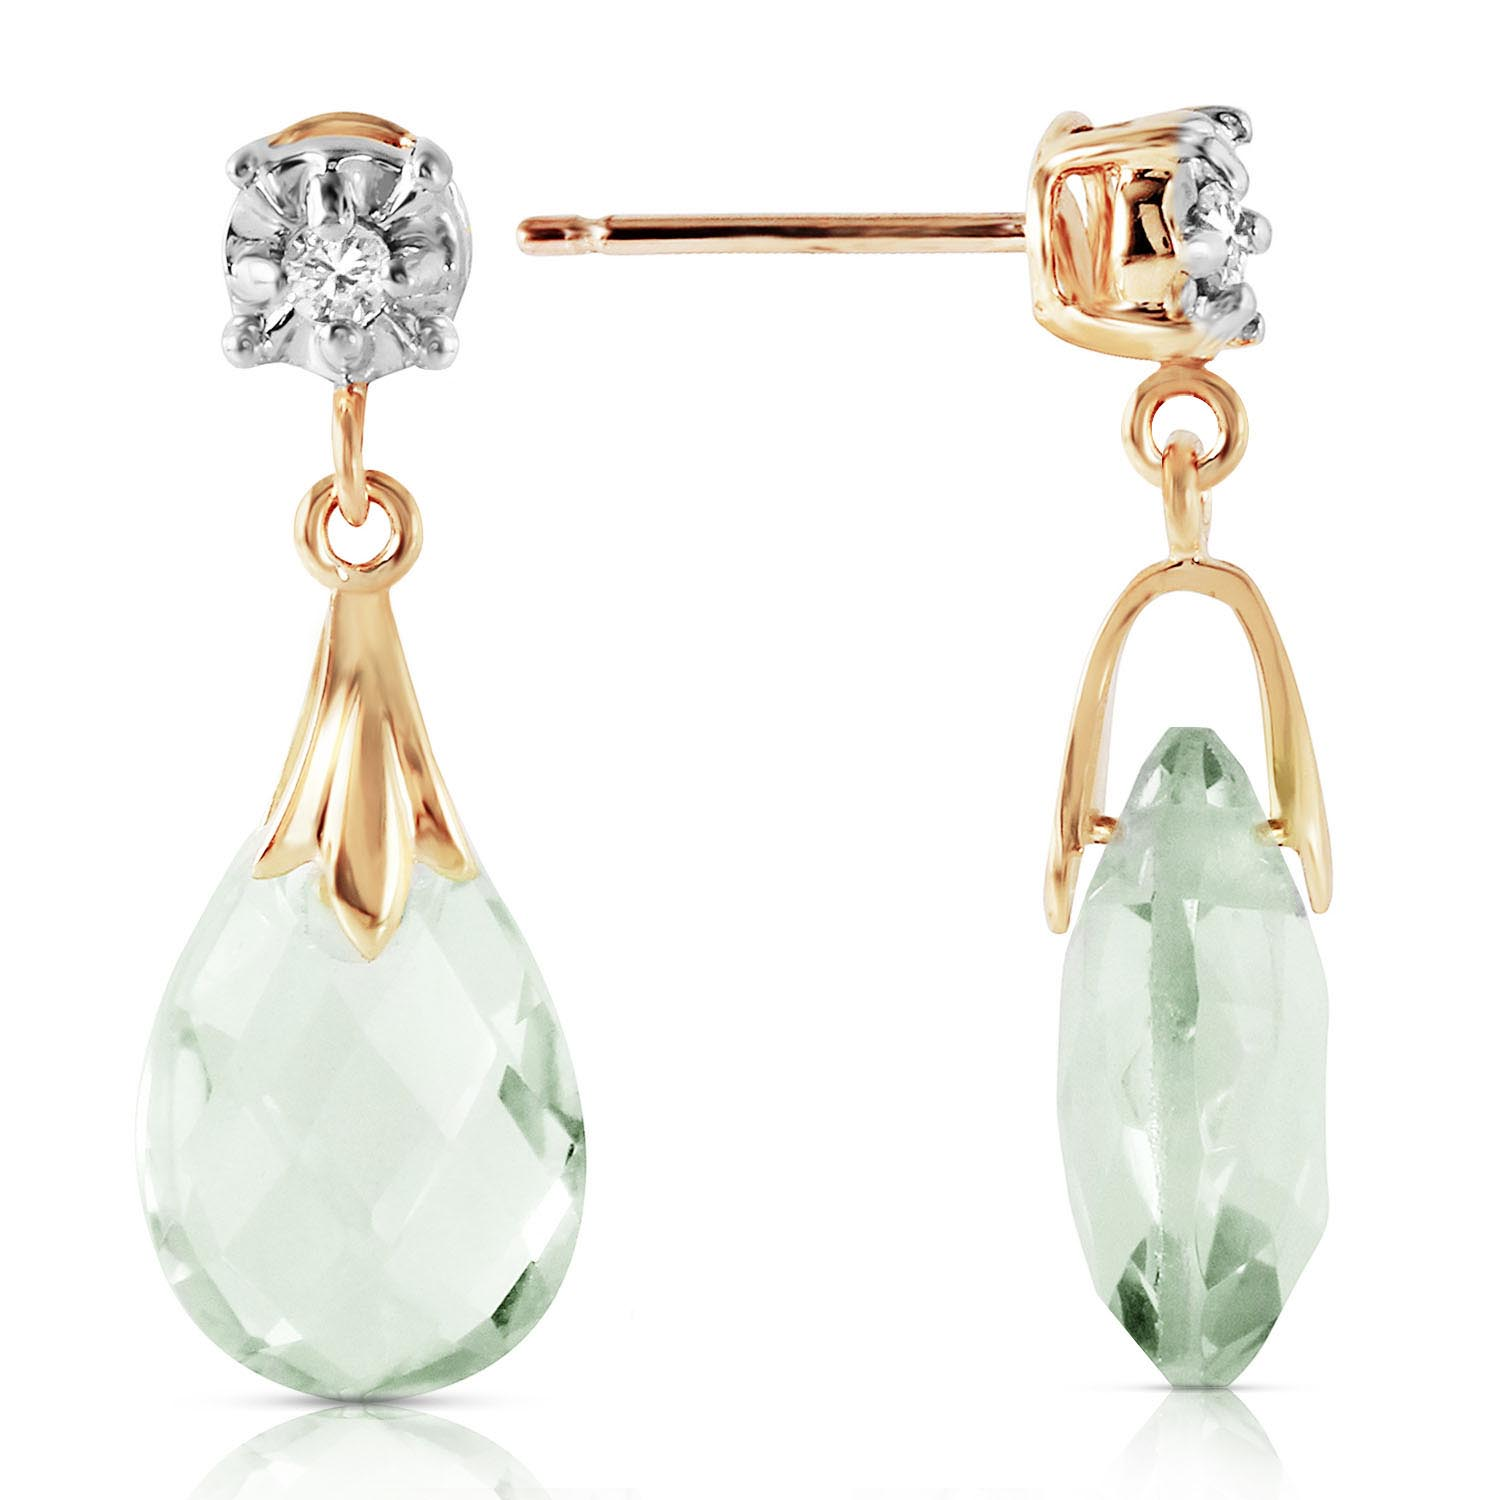 Green Amethyst and Diamond Comet Stud Earrings 6.0ctw in 9ct Gold